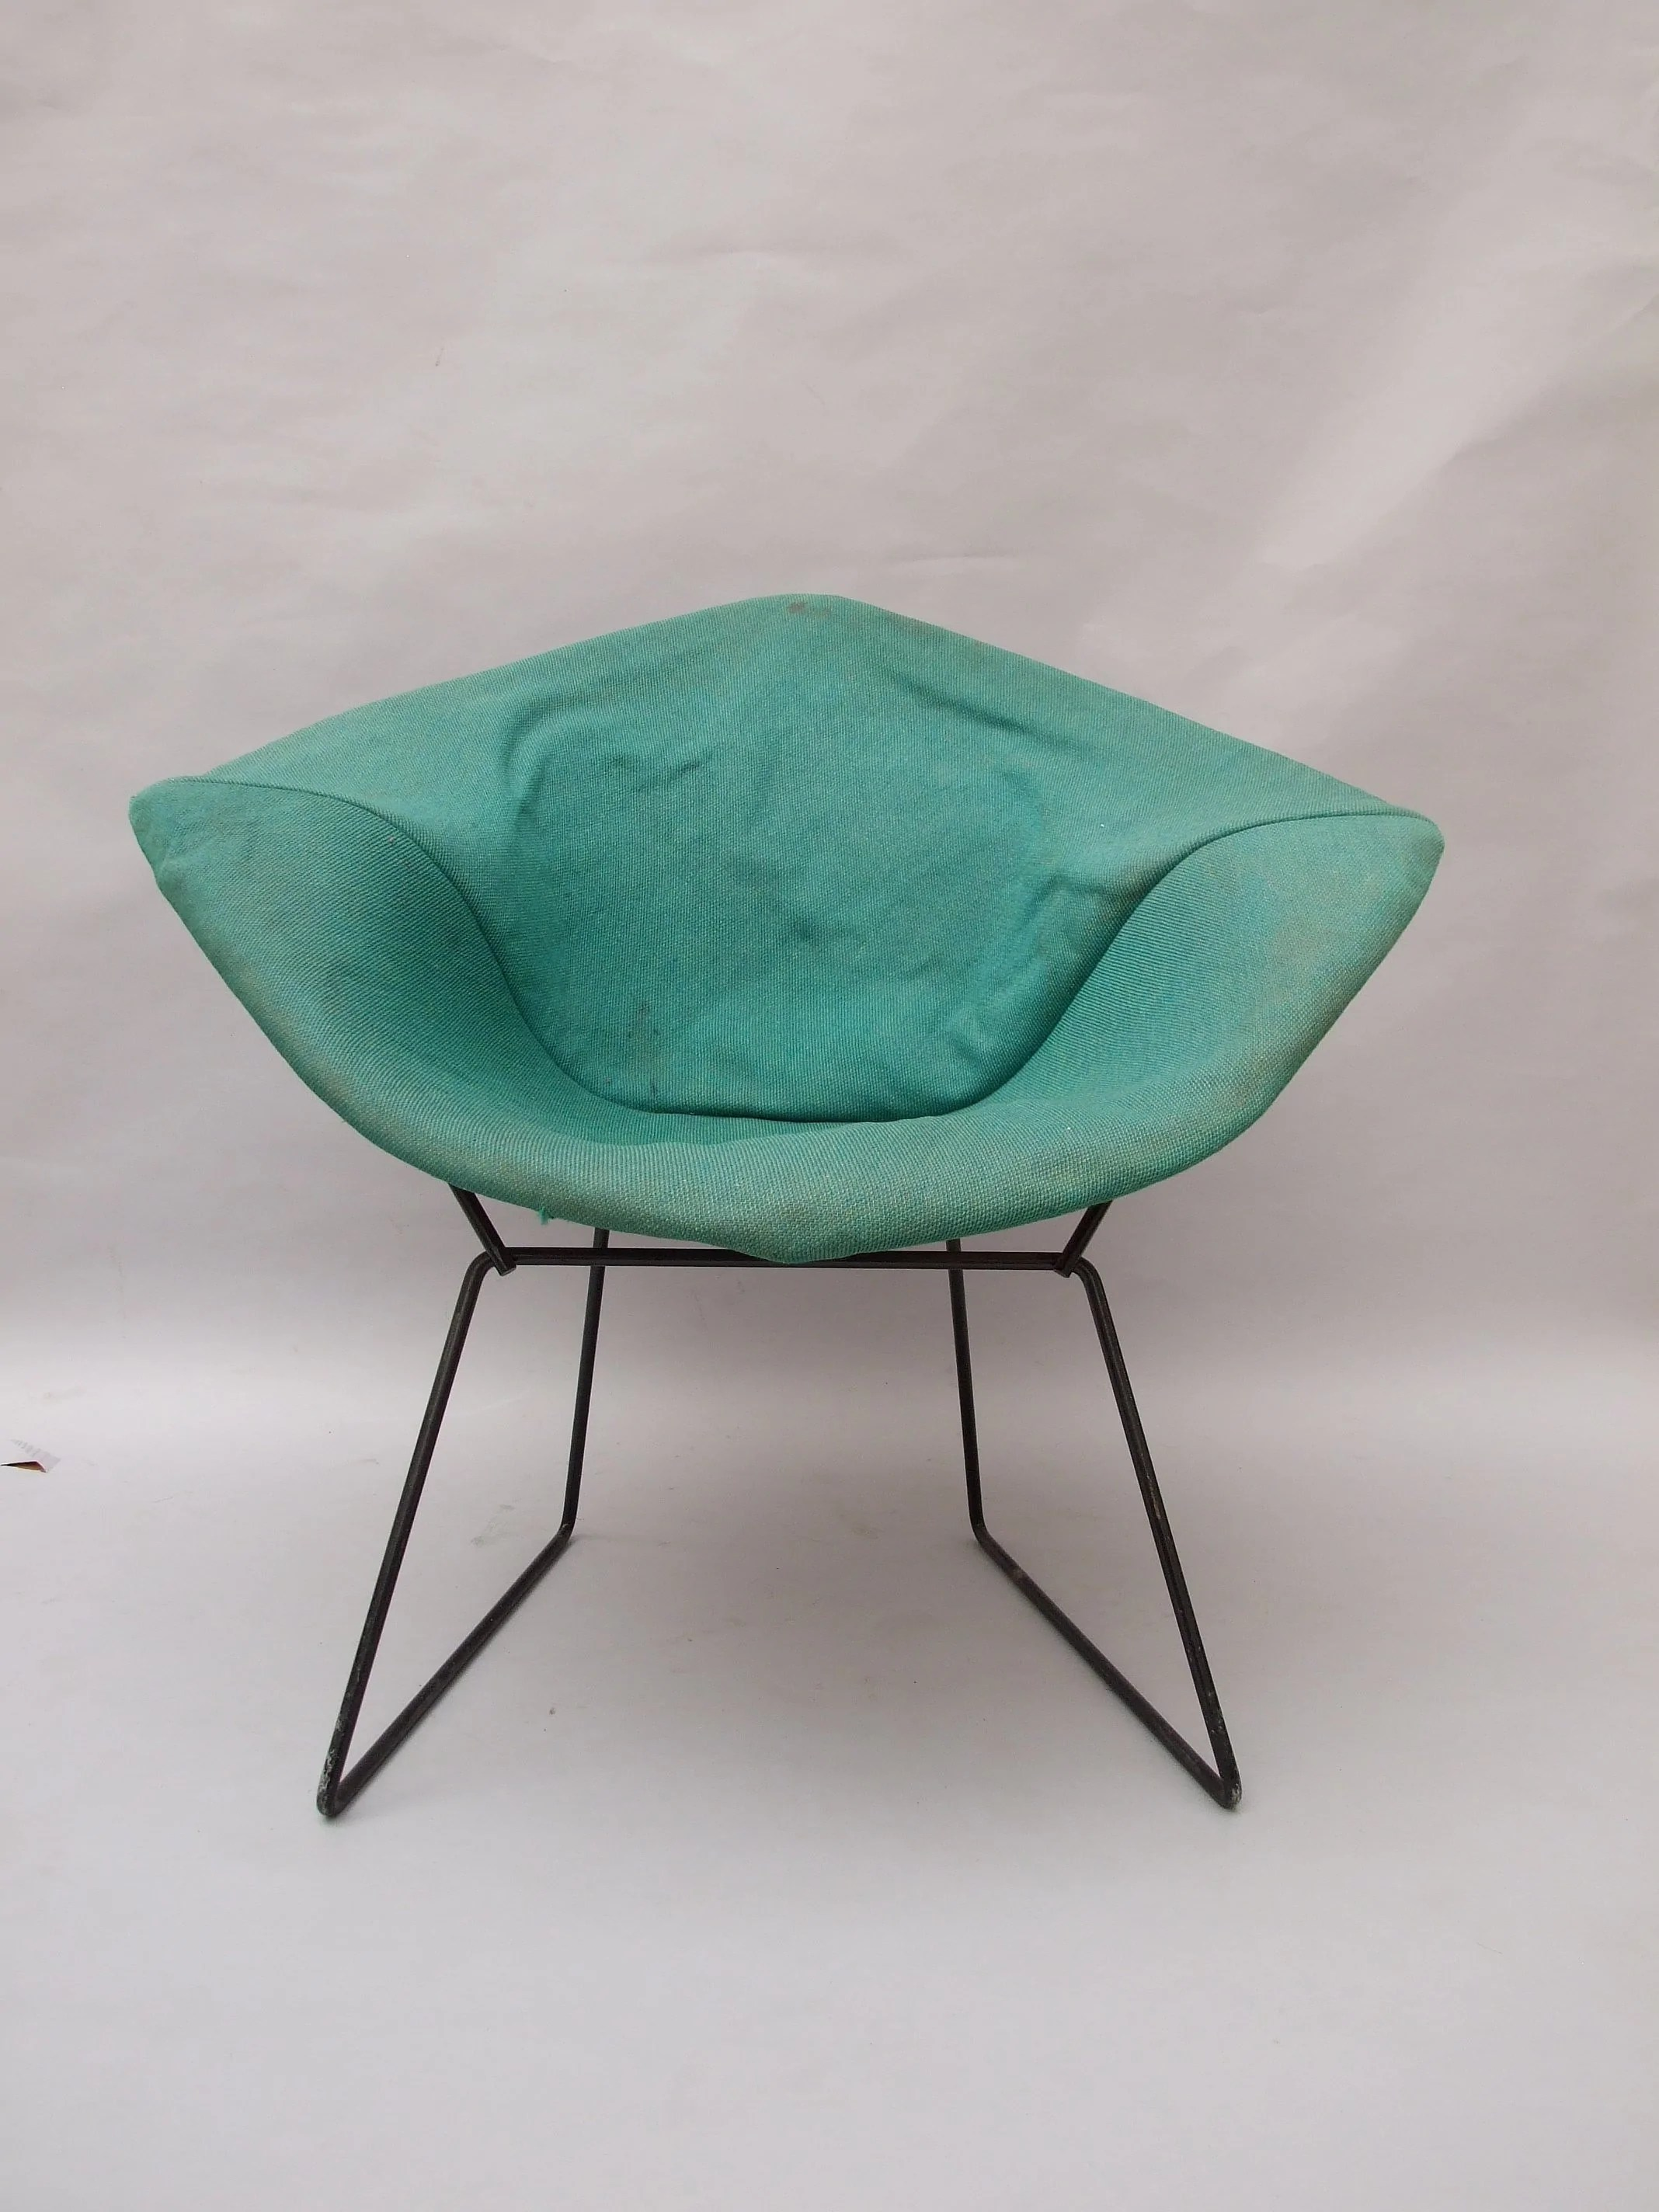 stretch morgan 1 piece sofa furniture cover room and board york with chaise harry bertoia 39diamond 39 chair the millinery works